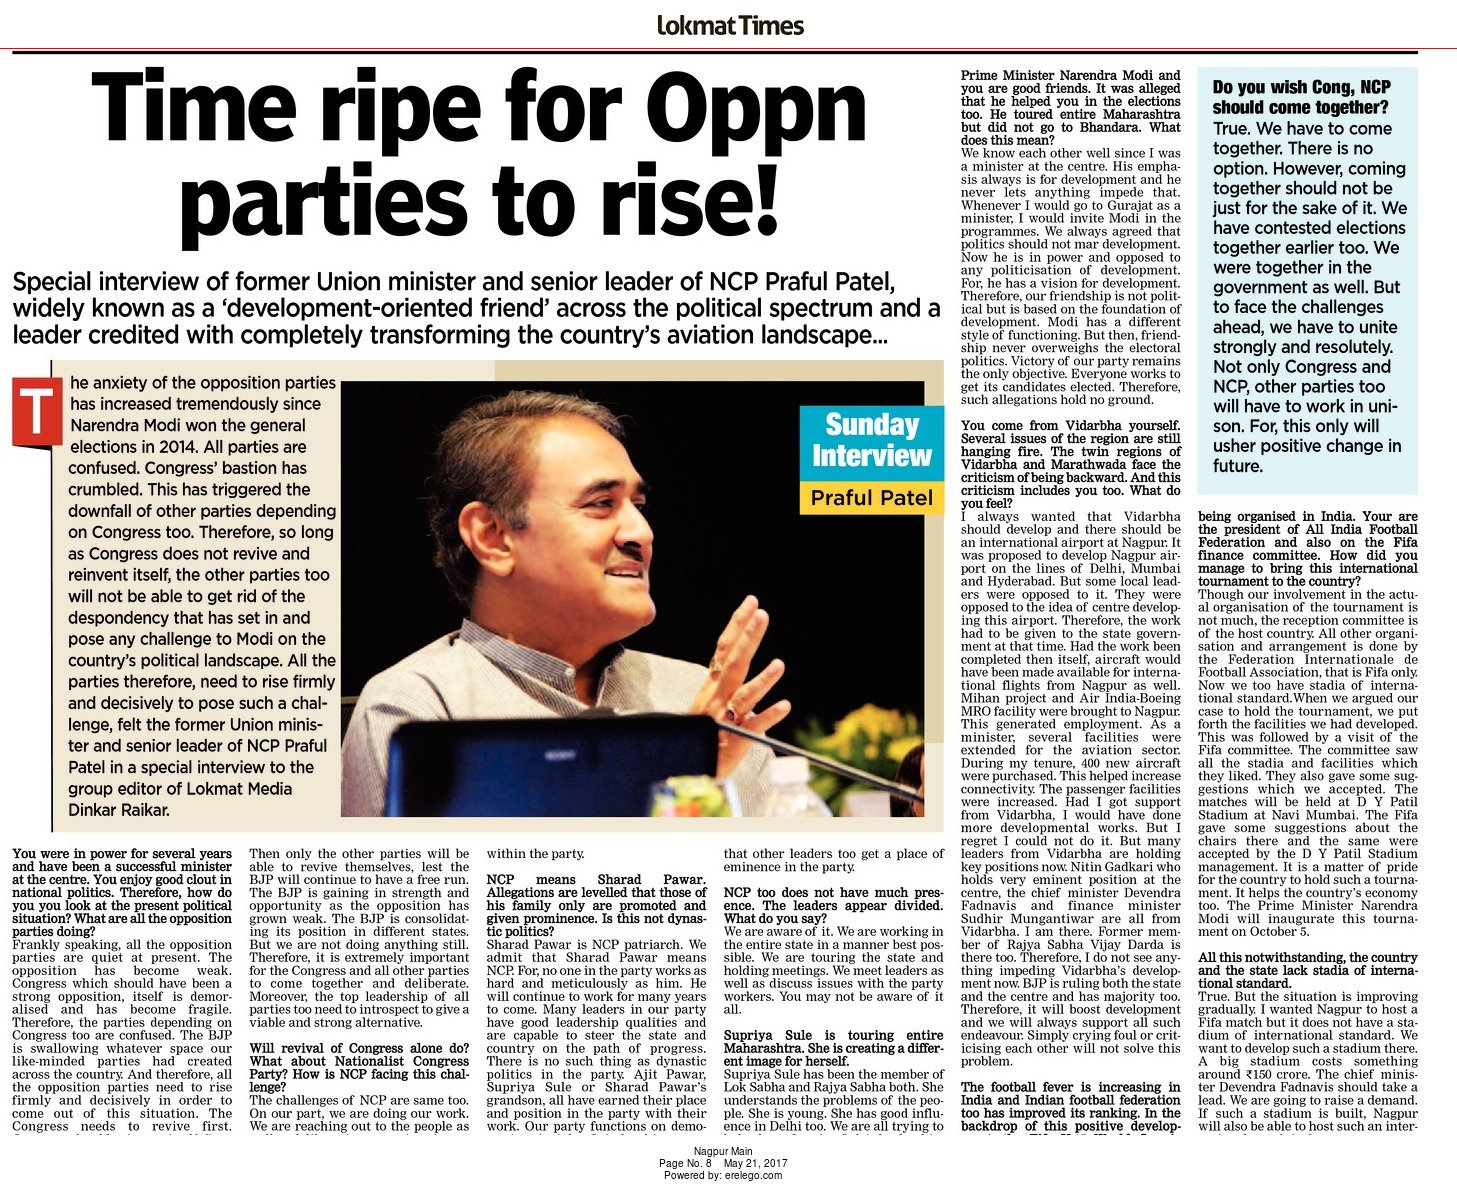 Time ripe for Oppn parties rise!